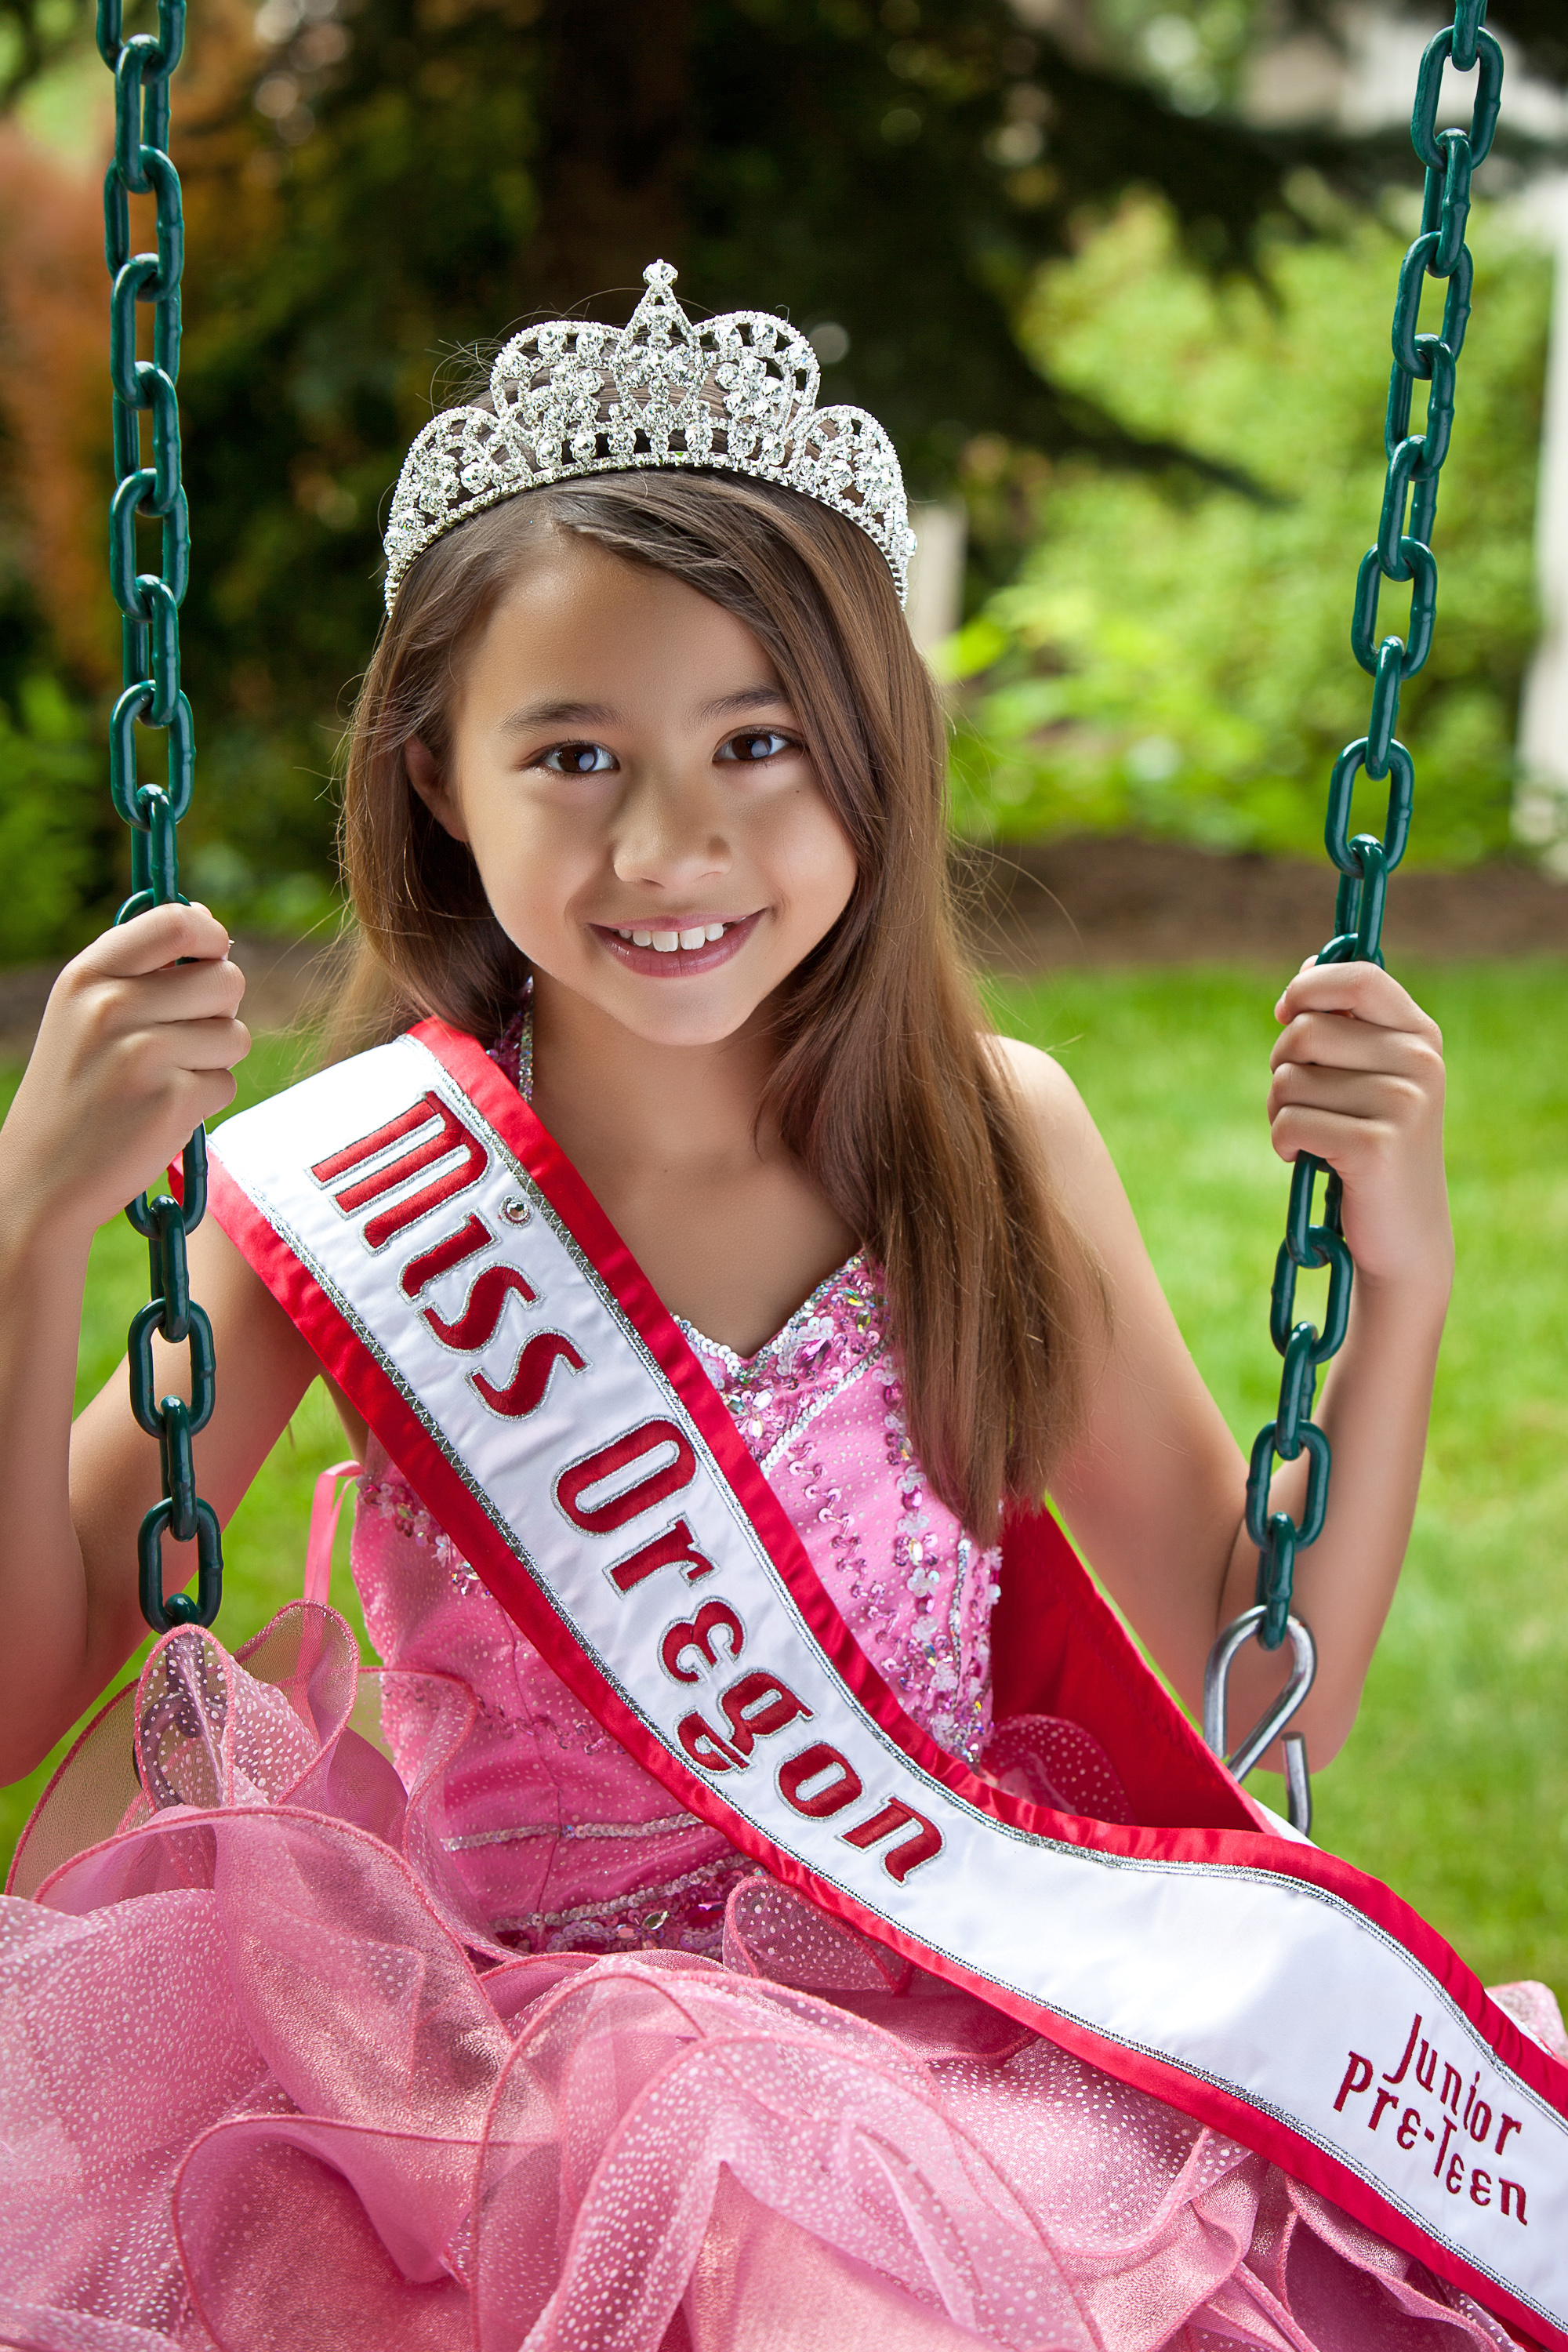 Risk seem Miss teen jr pageants consider